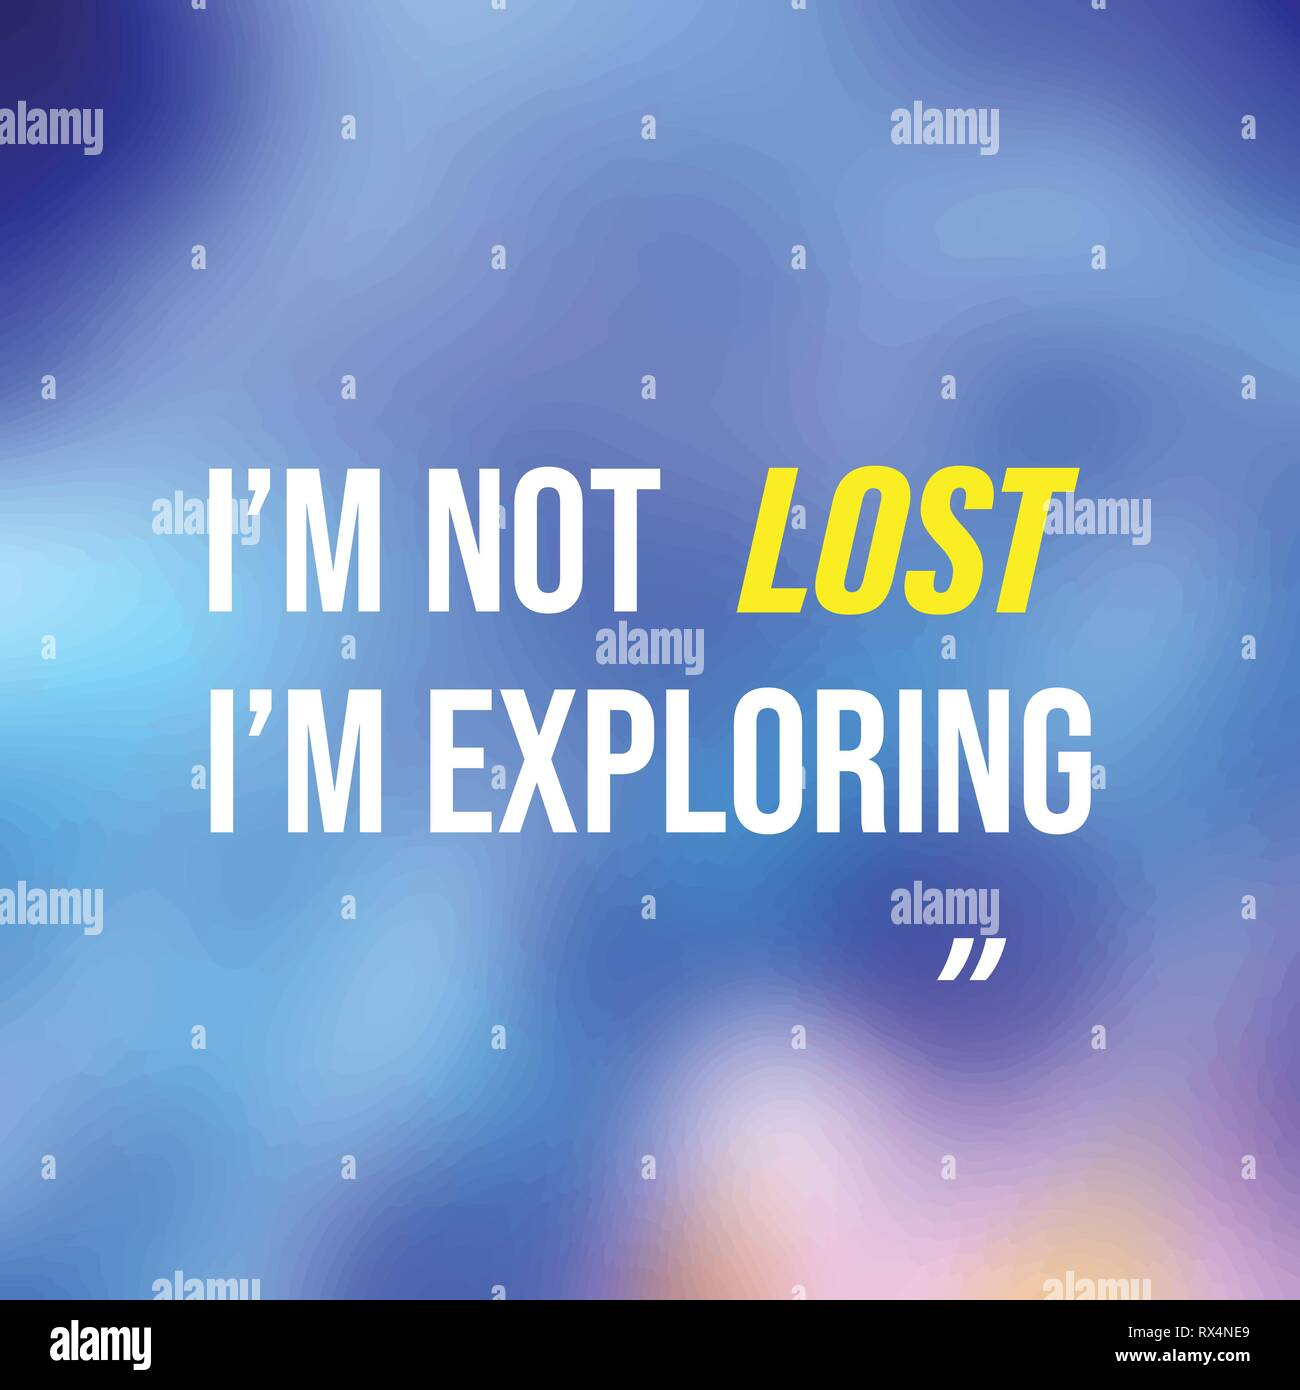 i'm not lost i'm exploring. Life quote with modern background vector illustration - Stock Vector